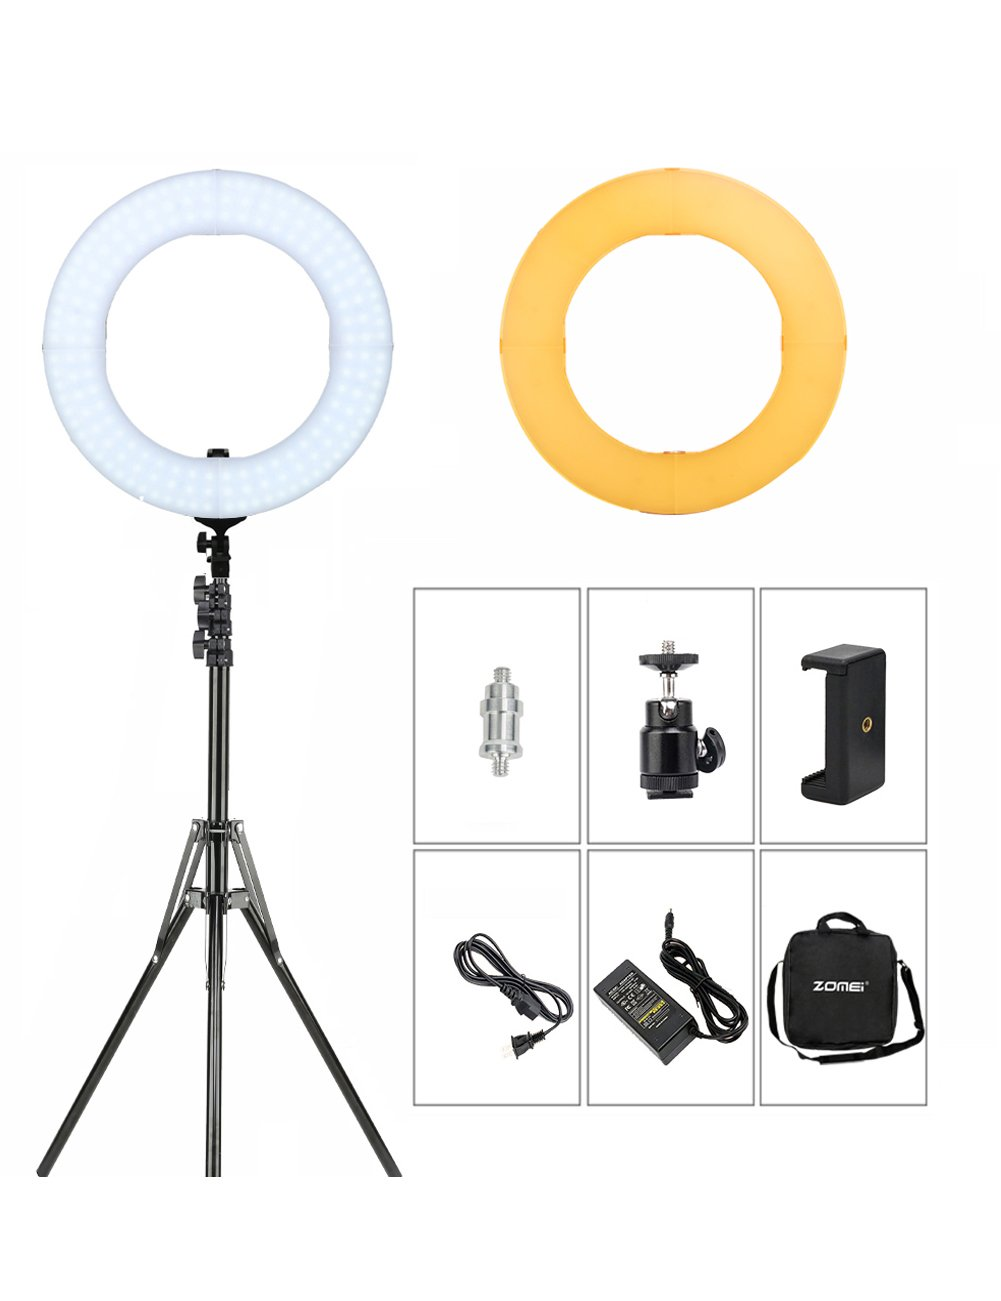 ZOMEI 14 inch LED Ring Light, Dimmable 41W 5500k Output Makeup and YouTube Video Light Professional Photography Lights with Stand, Orange Plastic Filters and Carrying Bag by BONFOTO